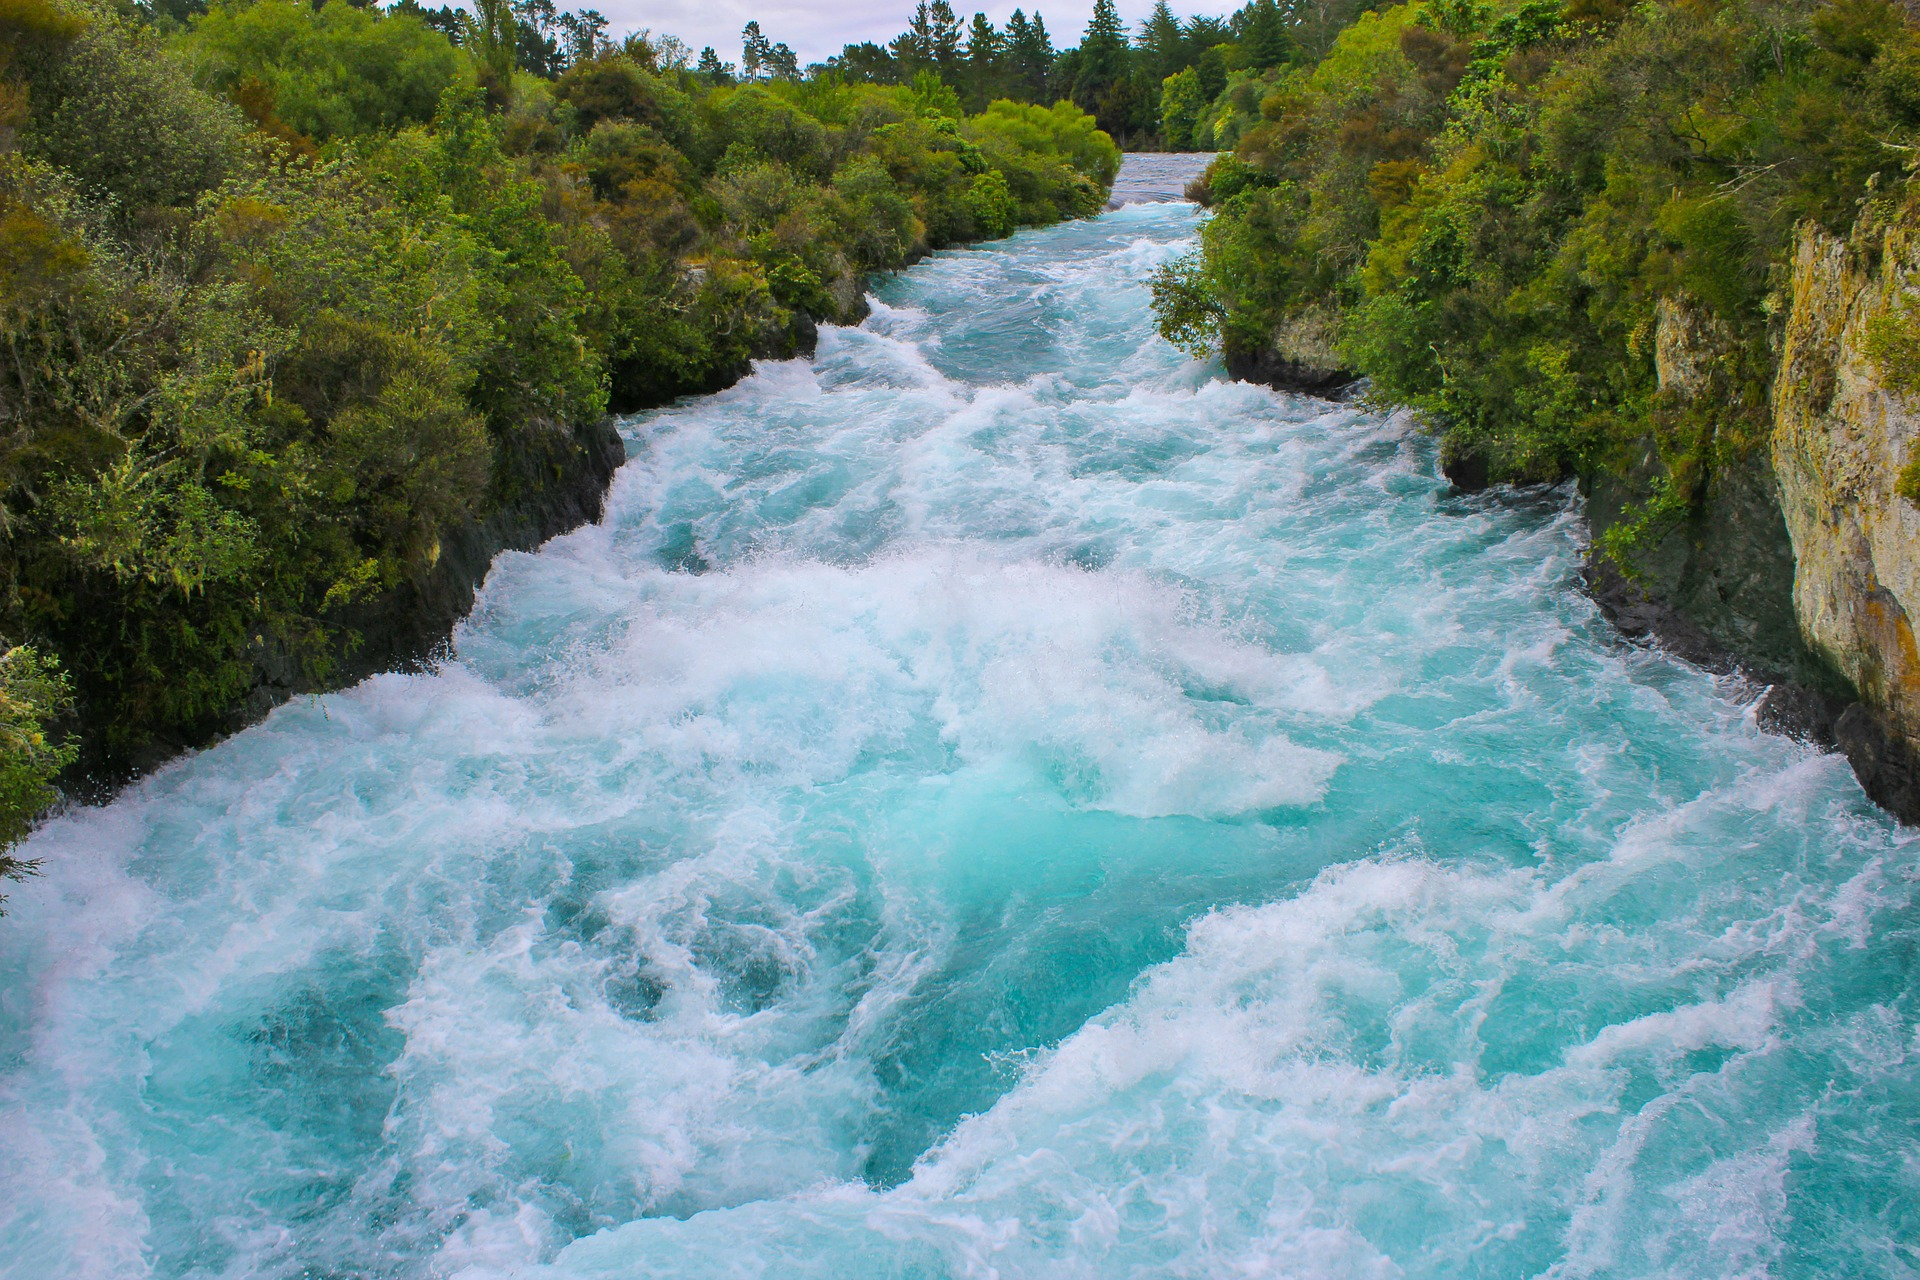 Waikato River, Huka Falls, New Zealand